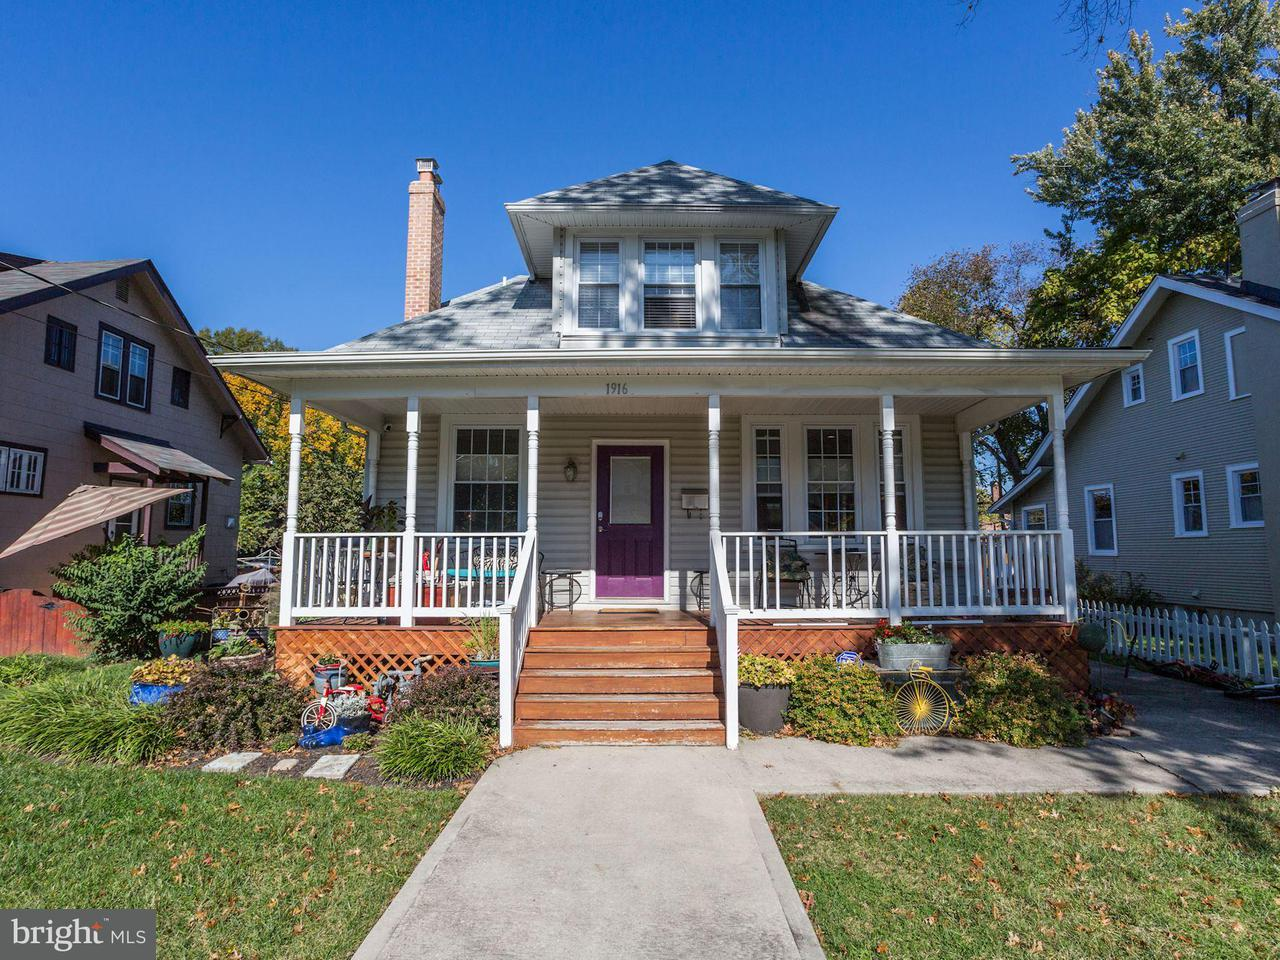 Single Family Home for Sale at 1916 LAWRENCE ST NE 1916 LAWRENCE ST NE Washington, District Of Columbia 20018 United States